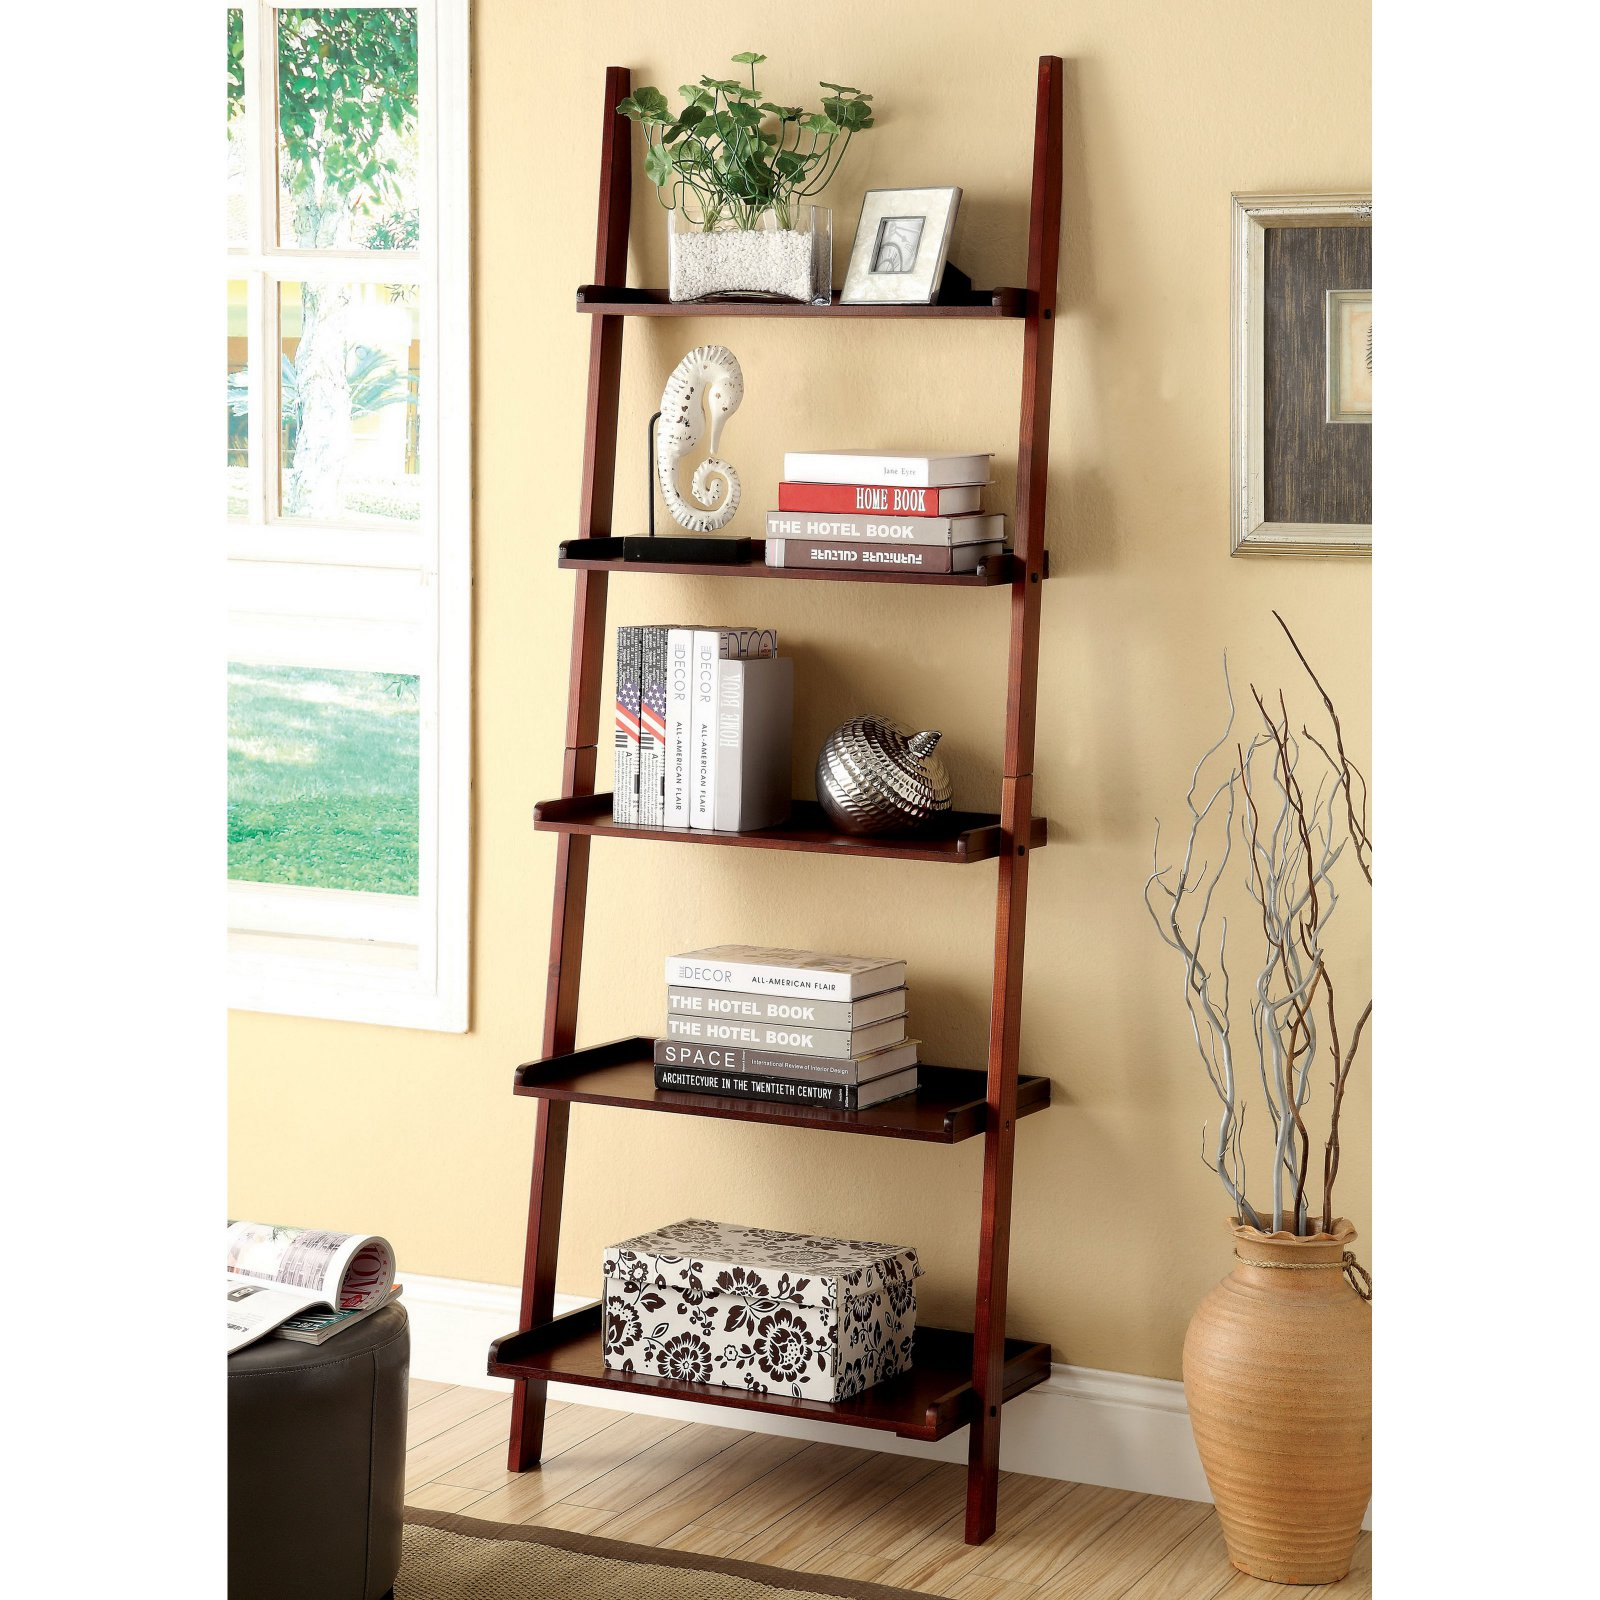 Furniture of America Delaris 5-Tier Ladder Shelf - Walmart.com